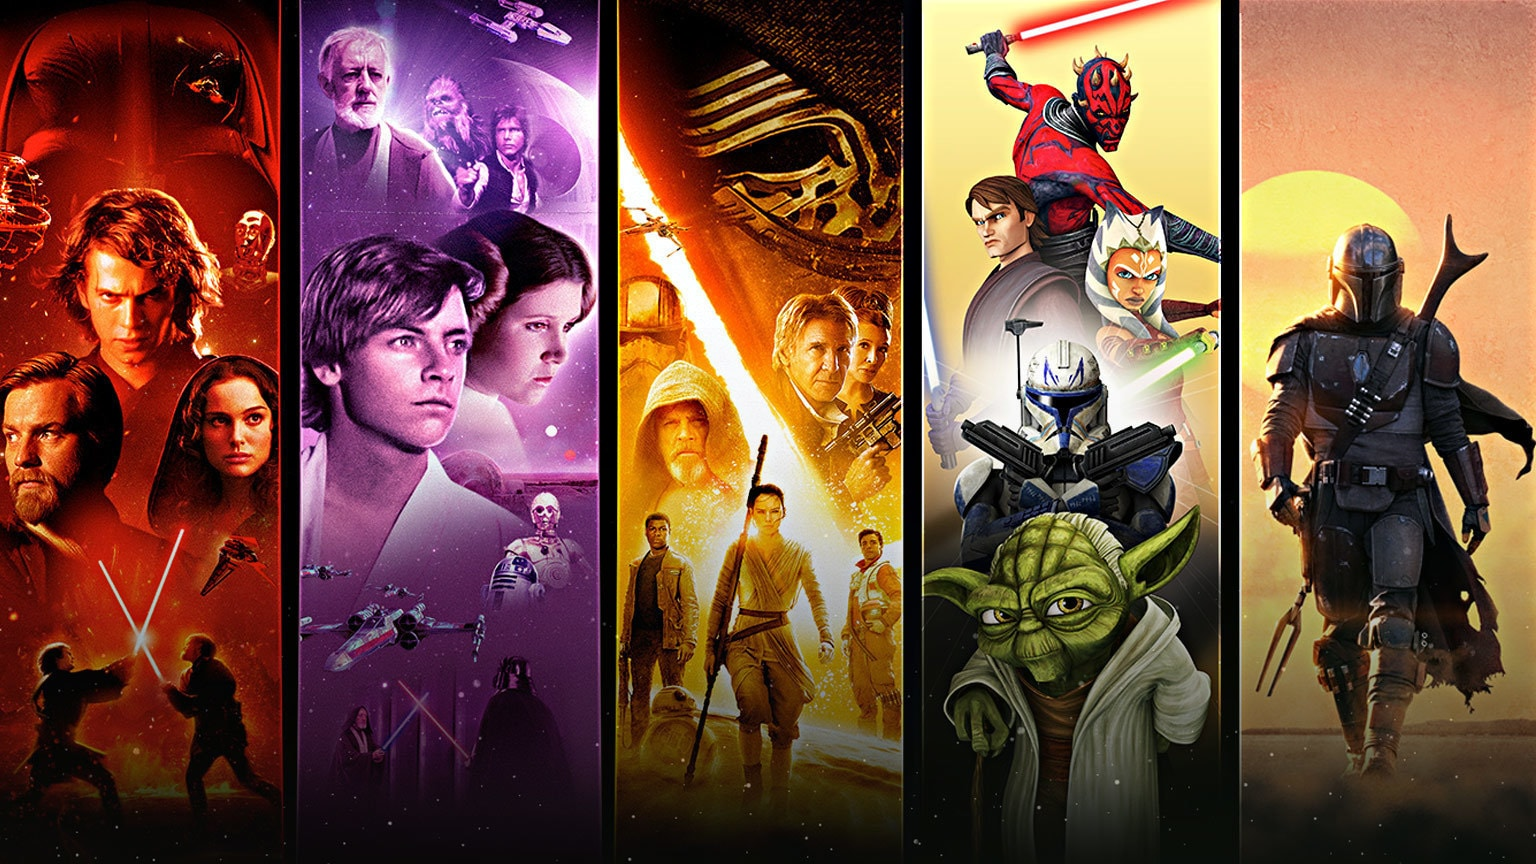 Poll: What Star Wars Content Are You Going to Watch First on Disney+?